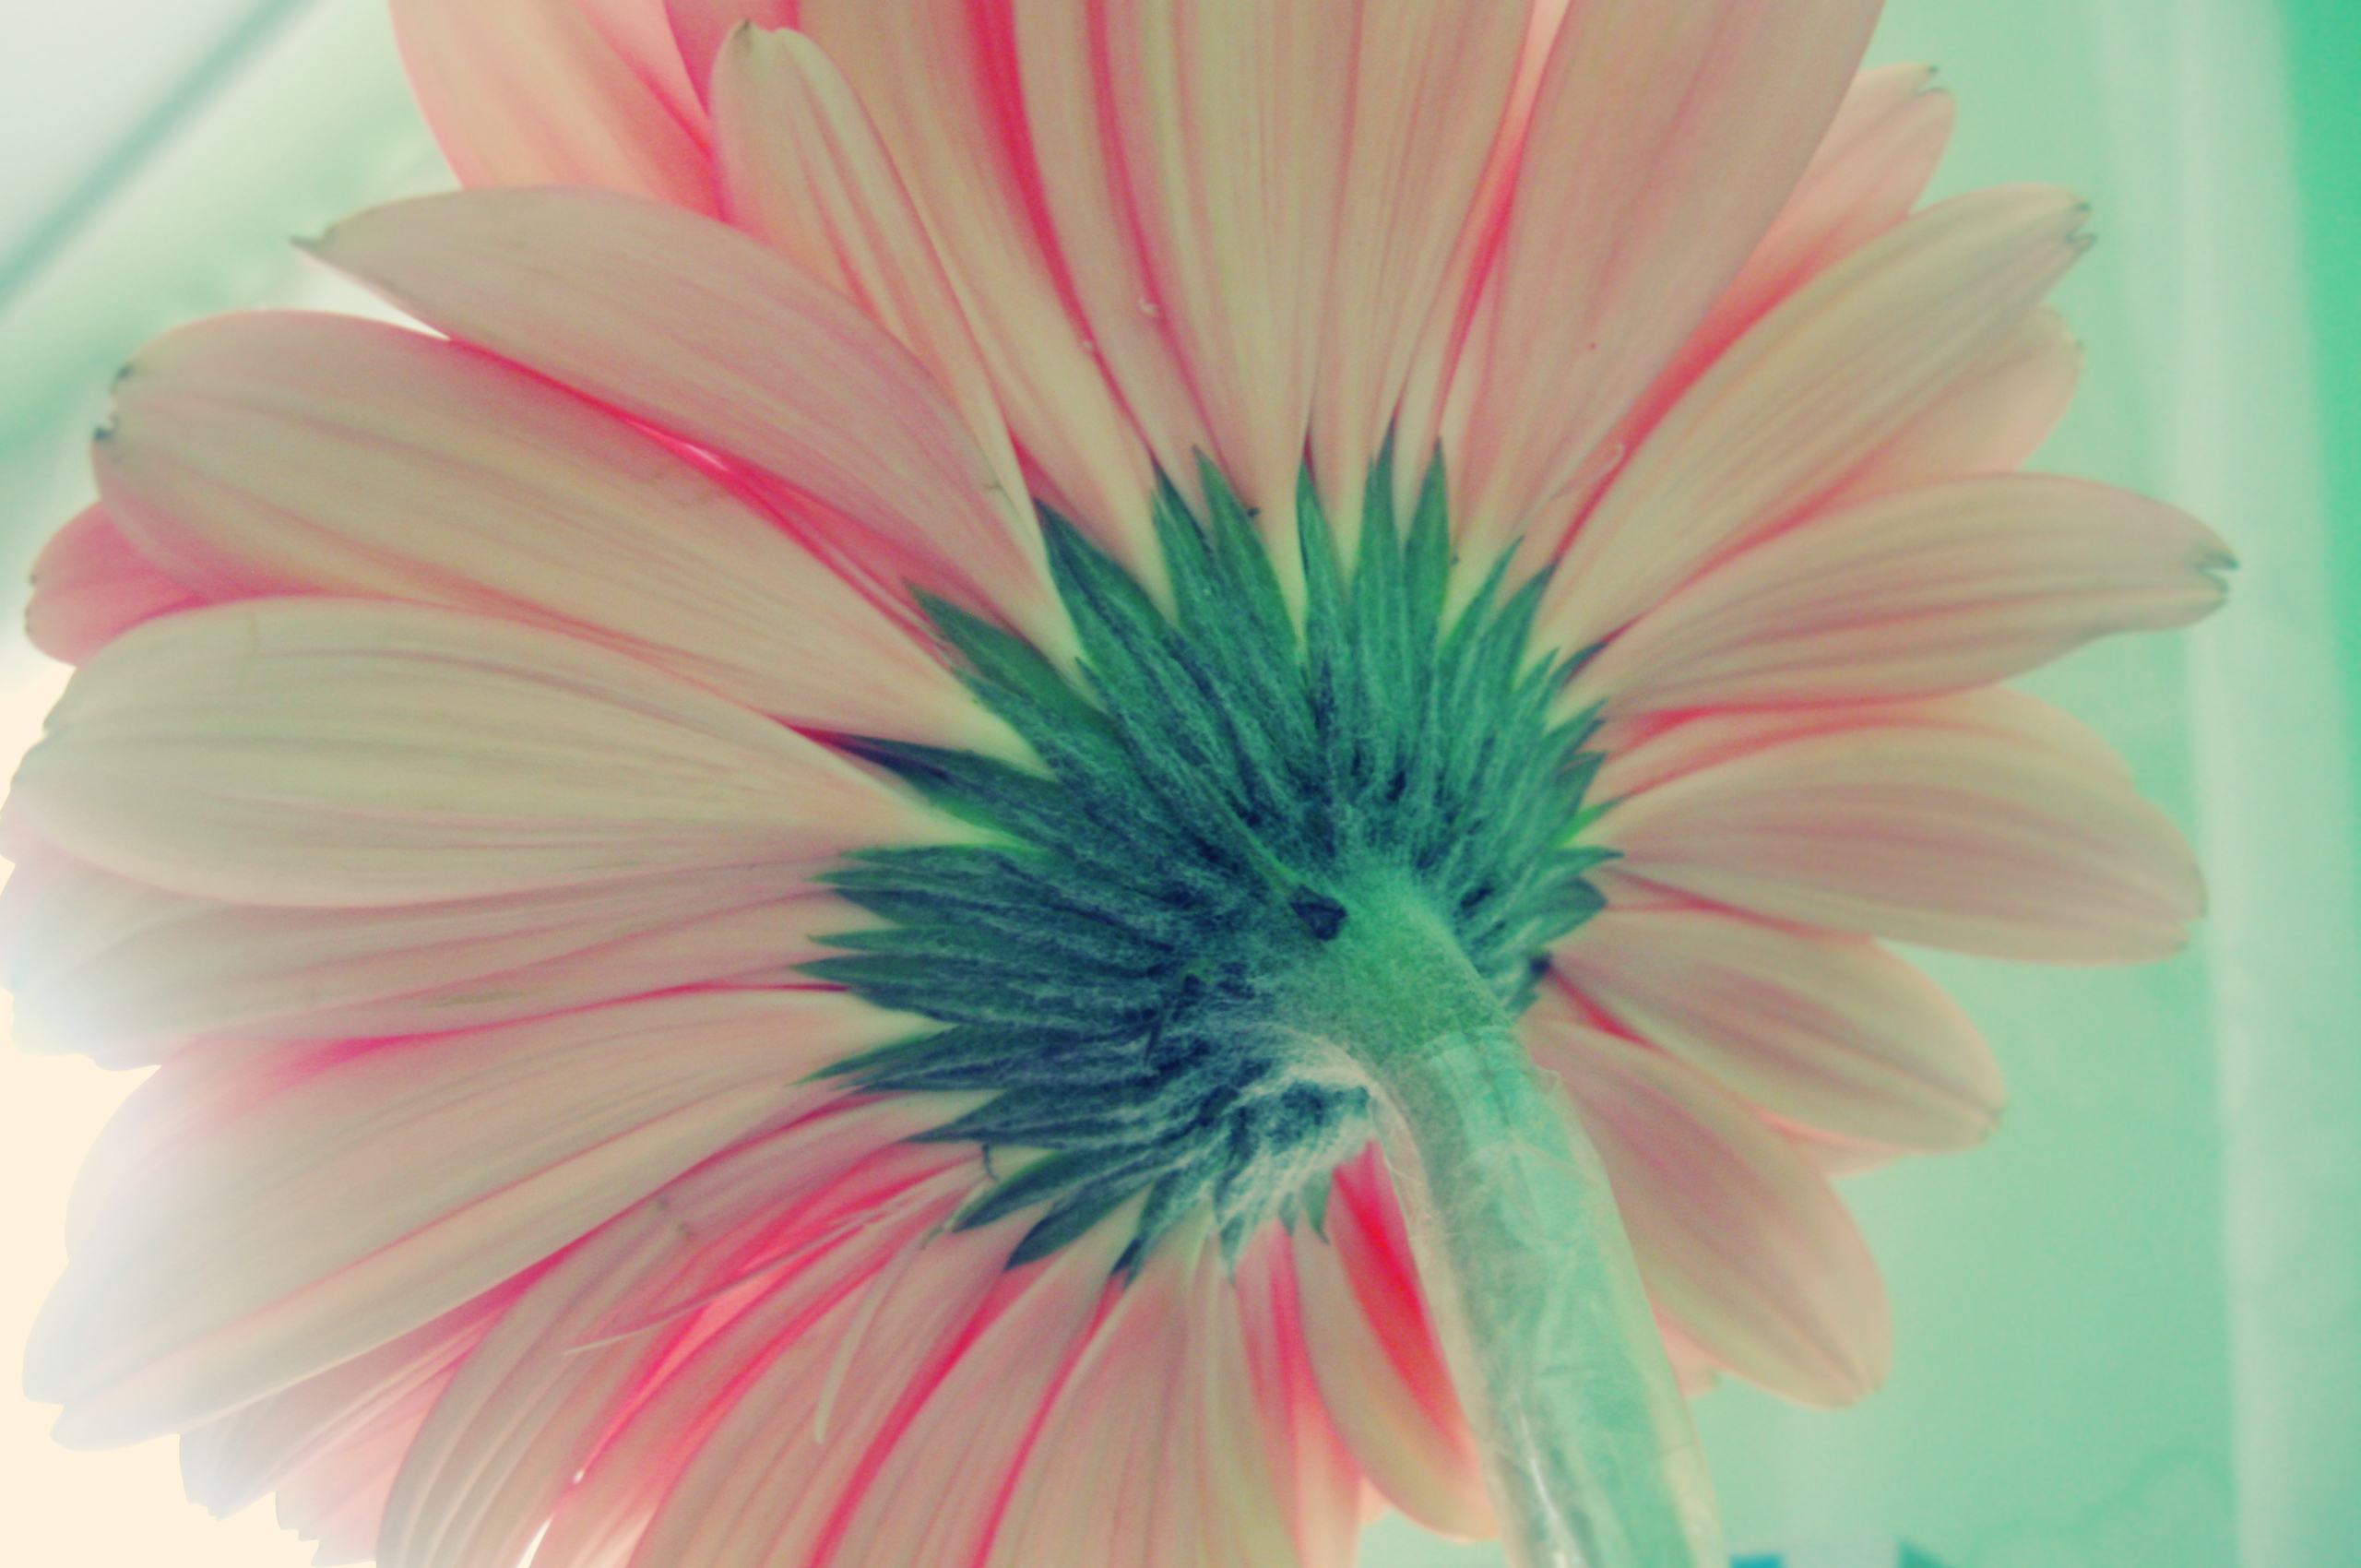 Free Download Wallpaper Abyss Explore The Collection Flowers